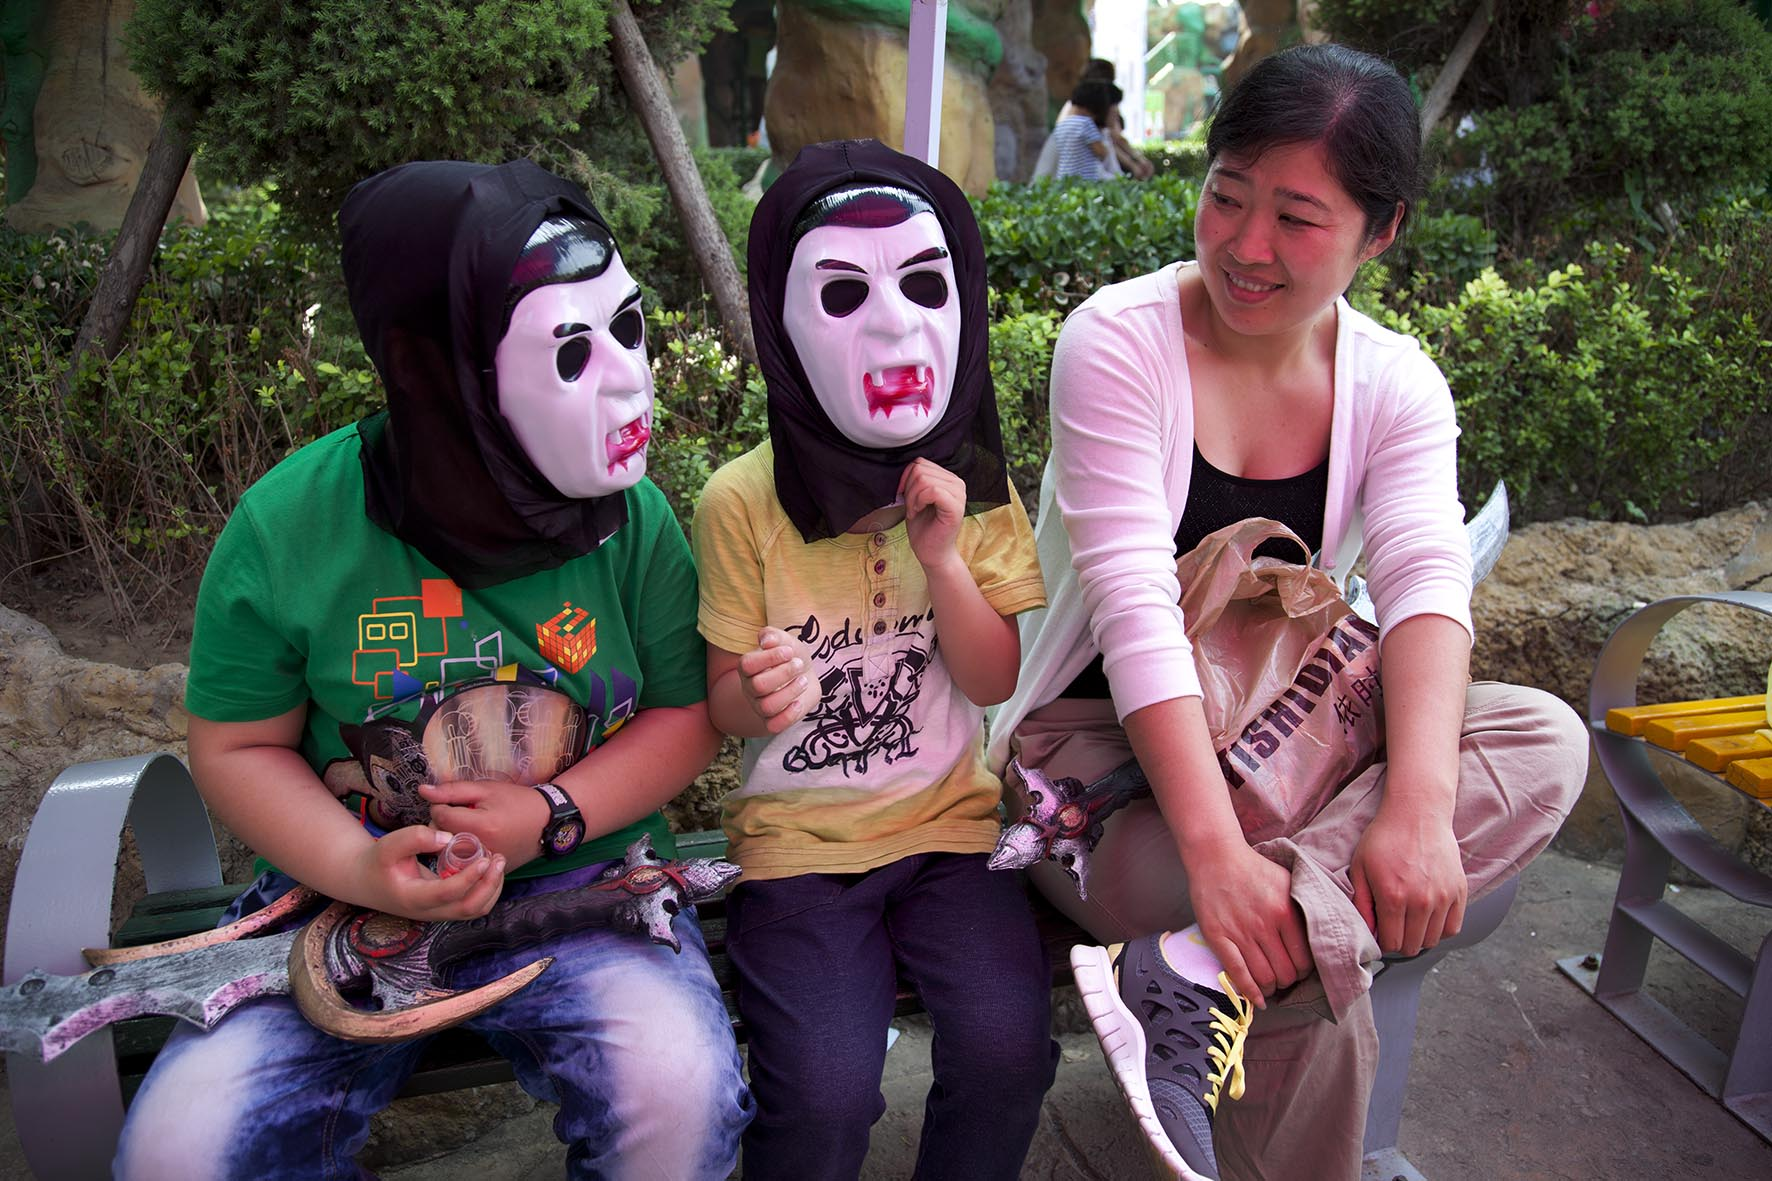 Two children wearing scary dracula horror masks. Happy Valley Beijing is an amusement park.